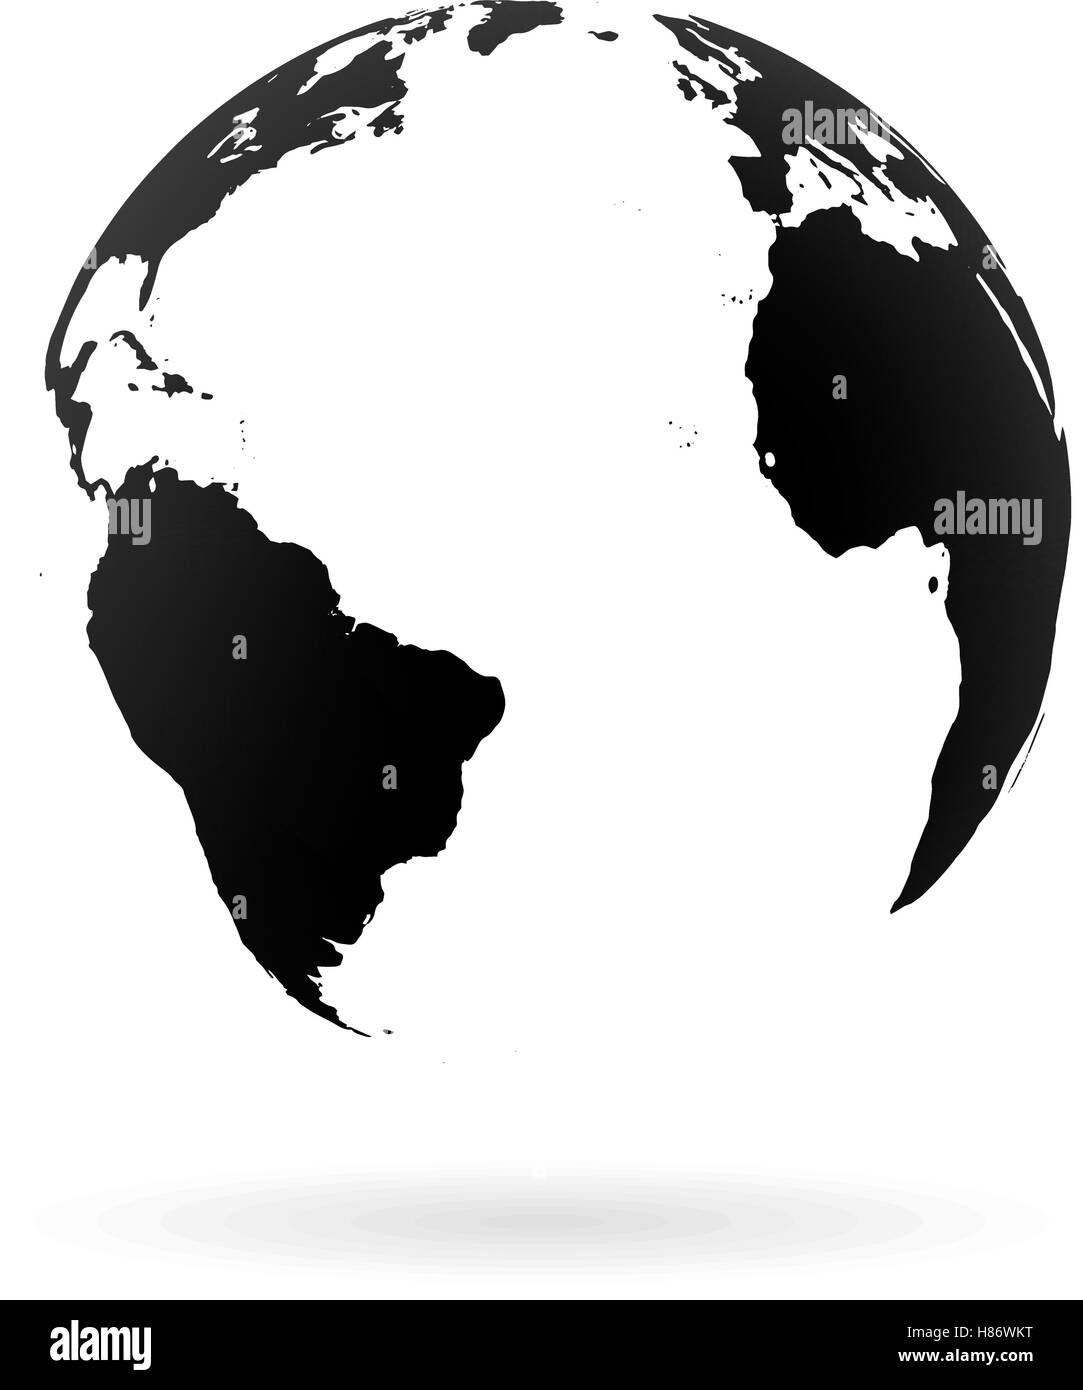 highly-detailed-earth-globe-symbol-north